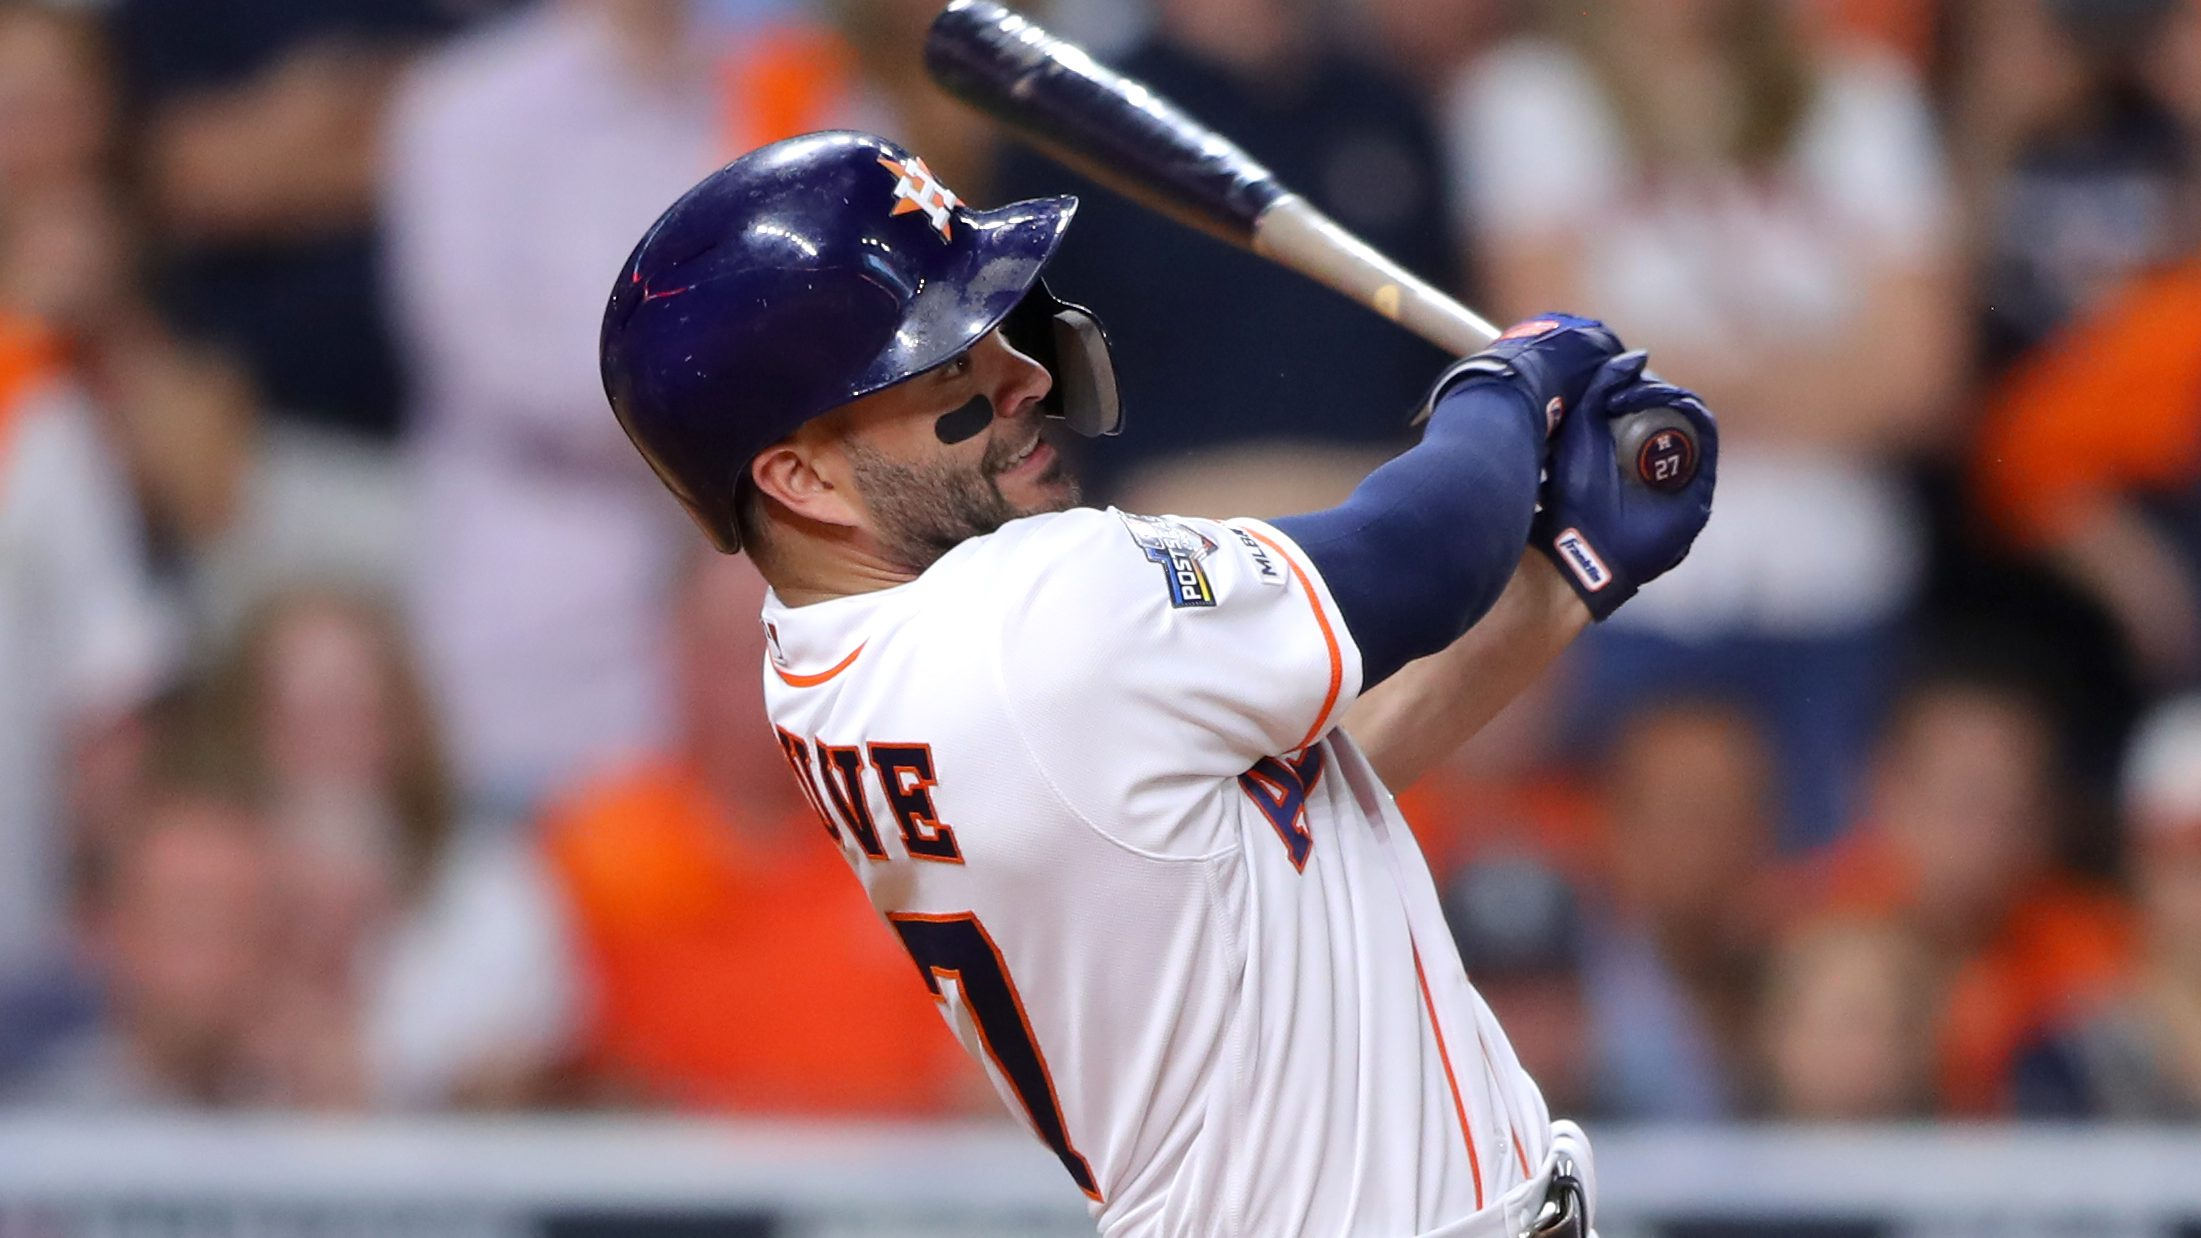 Players abuzz over latest allegations against Astros